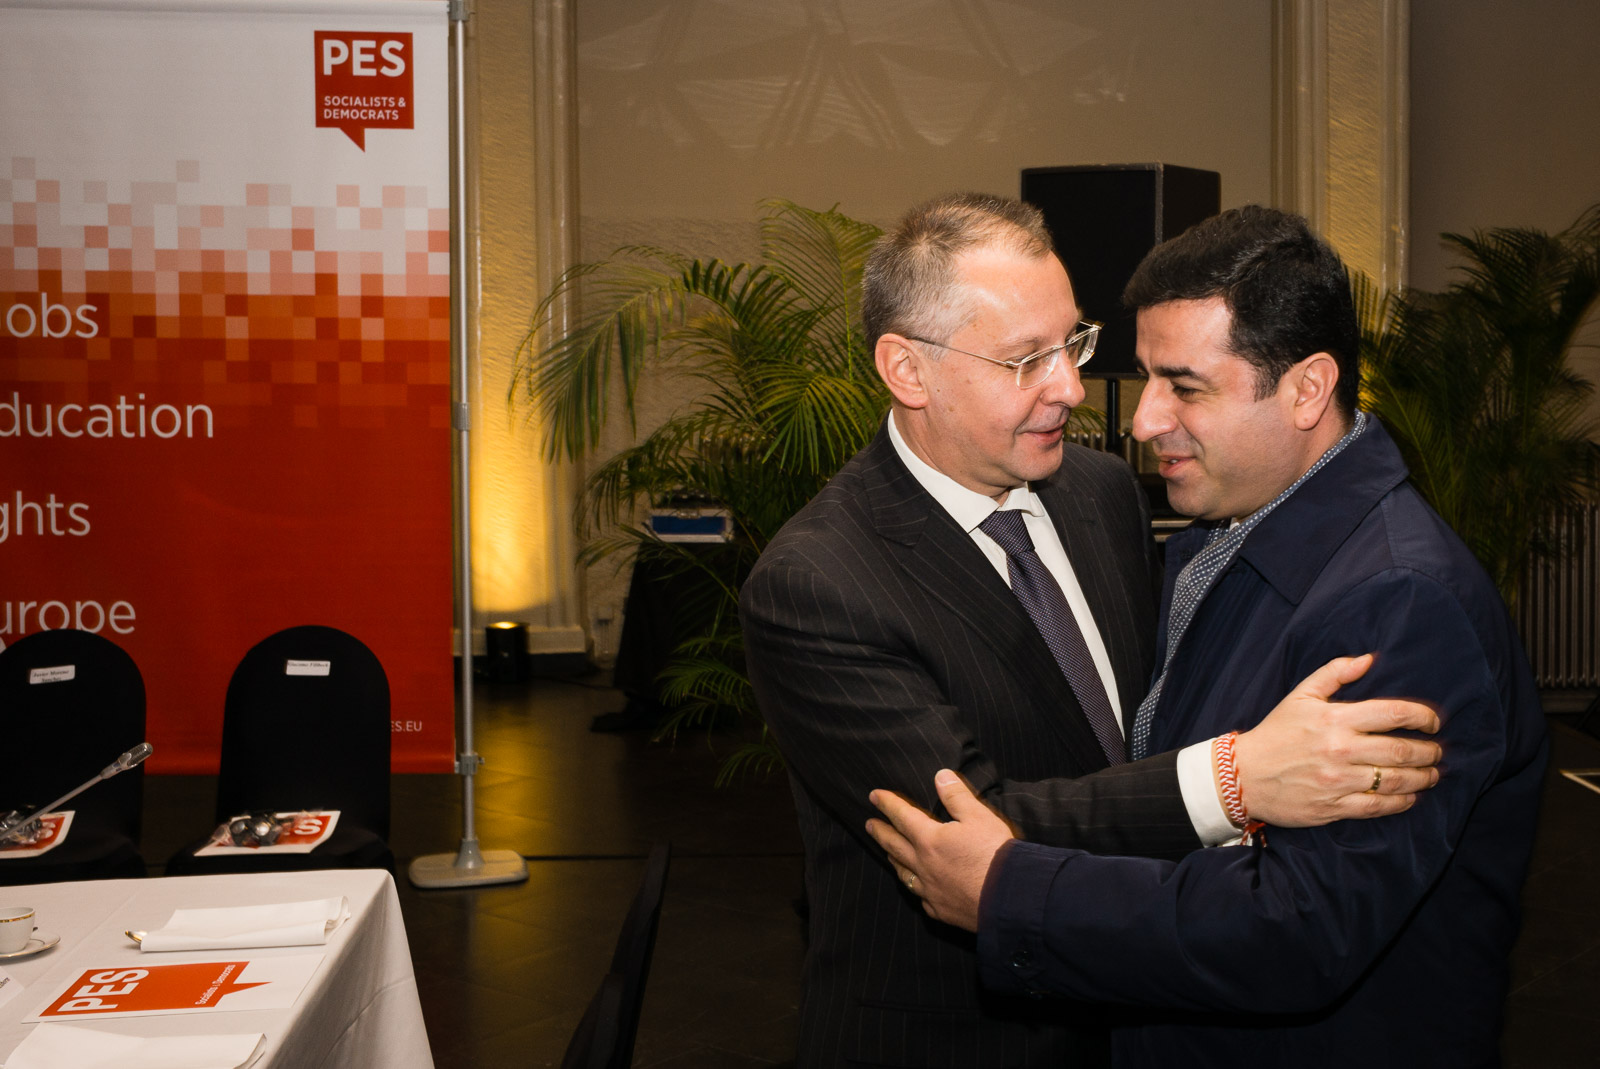 PES pre-EUcouncil meeting 7 March 2016